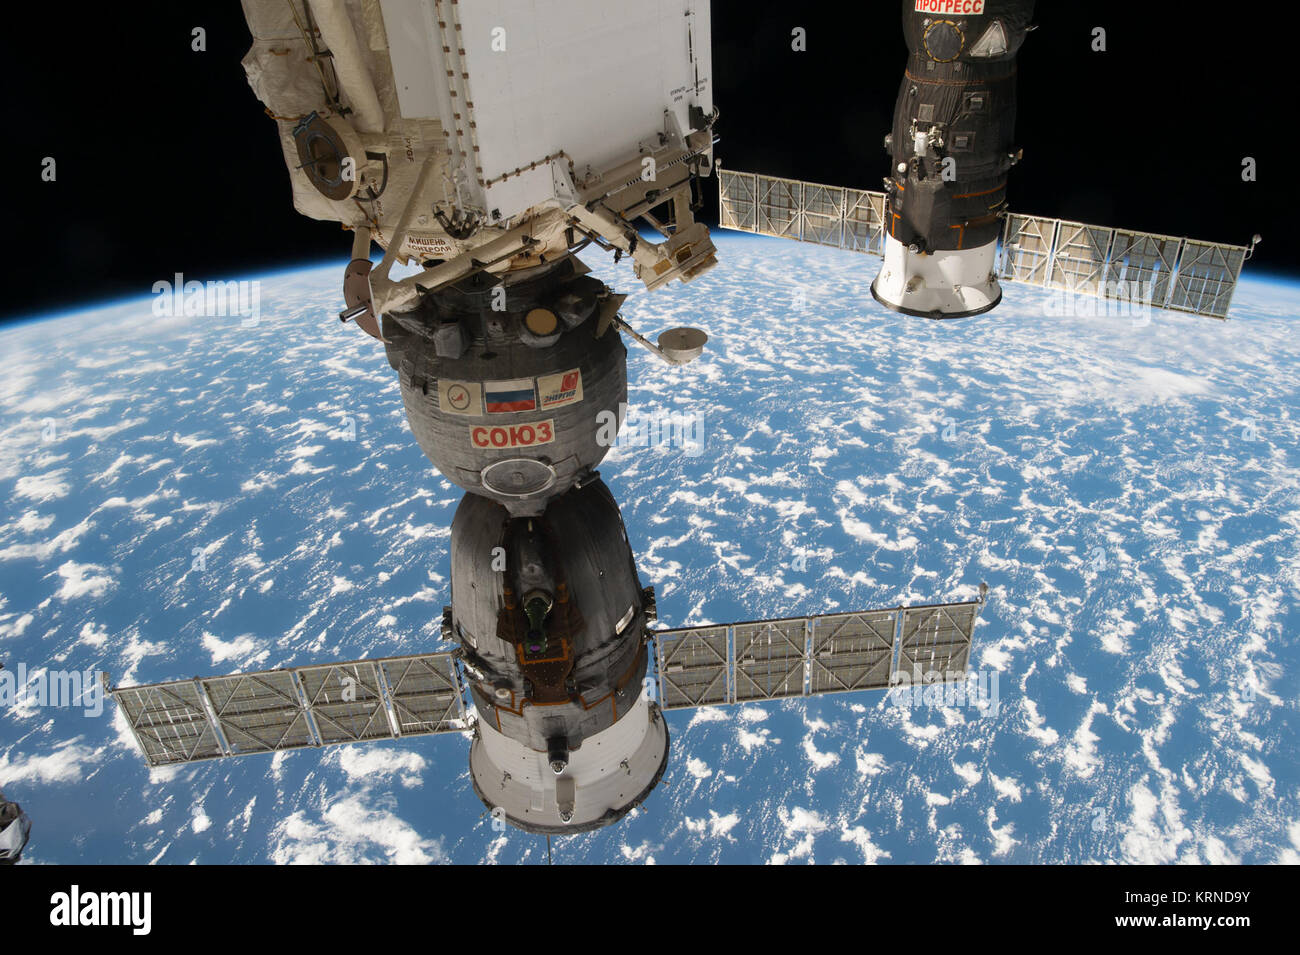 ISS-51 Soyuz MS-03 and Progress MS-05 spacecrafts - Stock Image